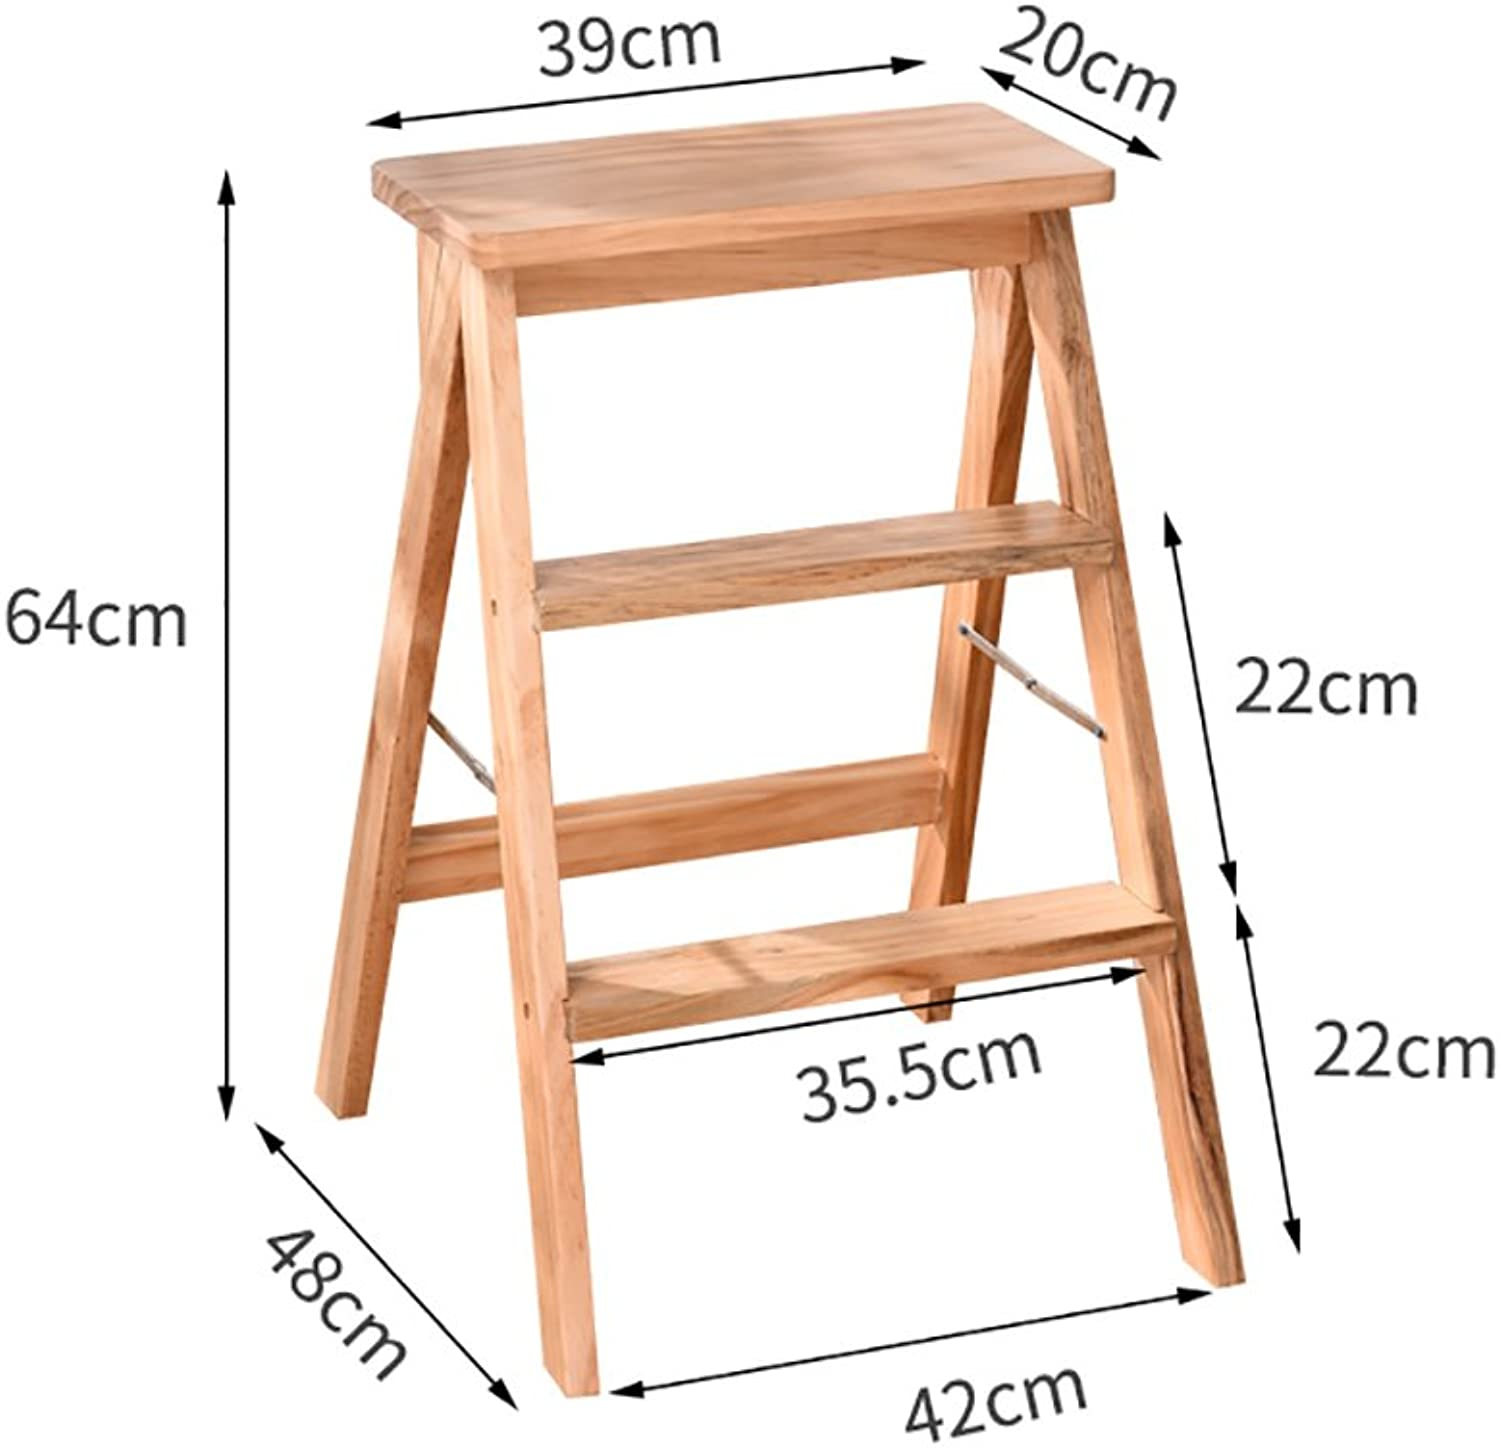 Step Stool Solid Wood Adult Step Stool Household Folding Chair Increase Stool